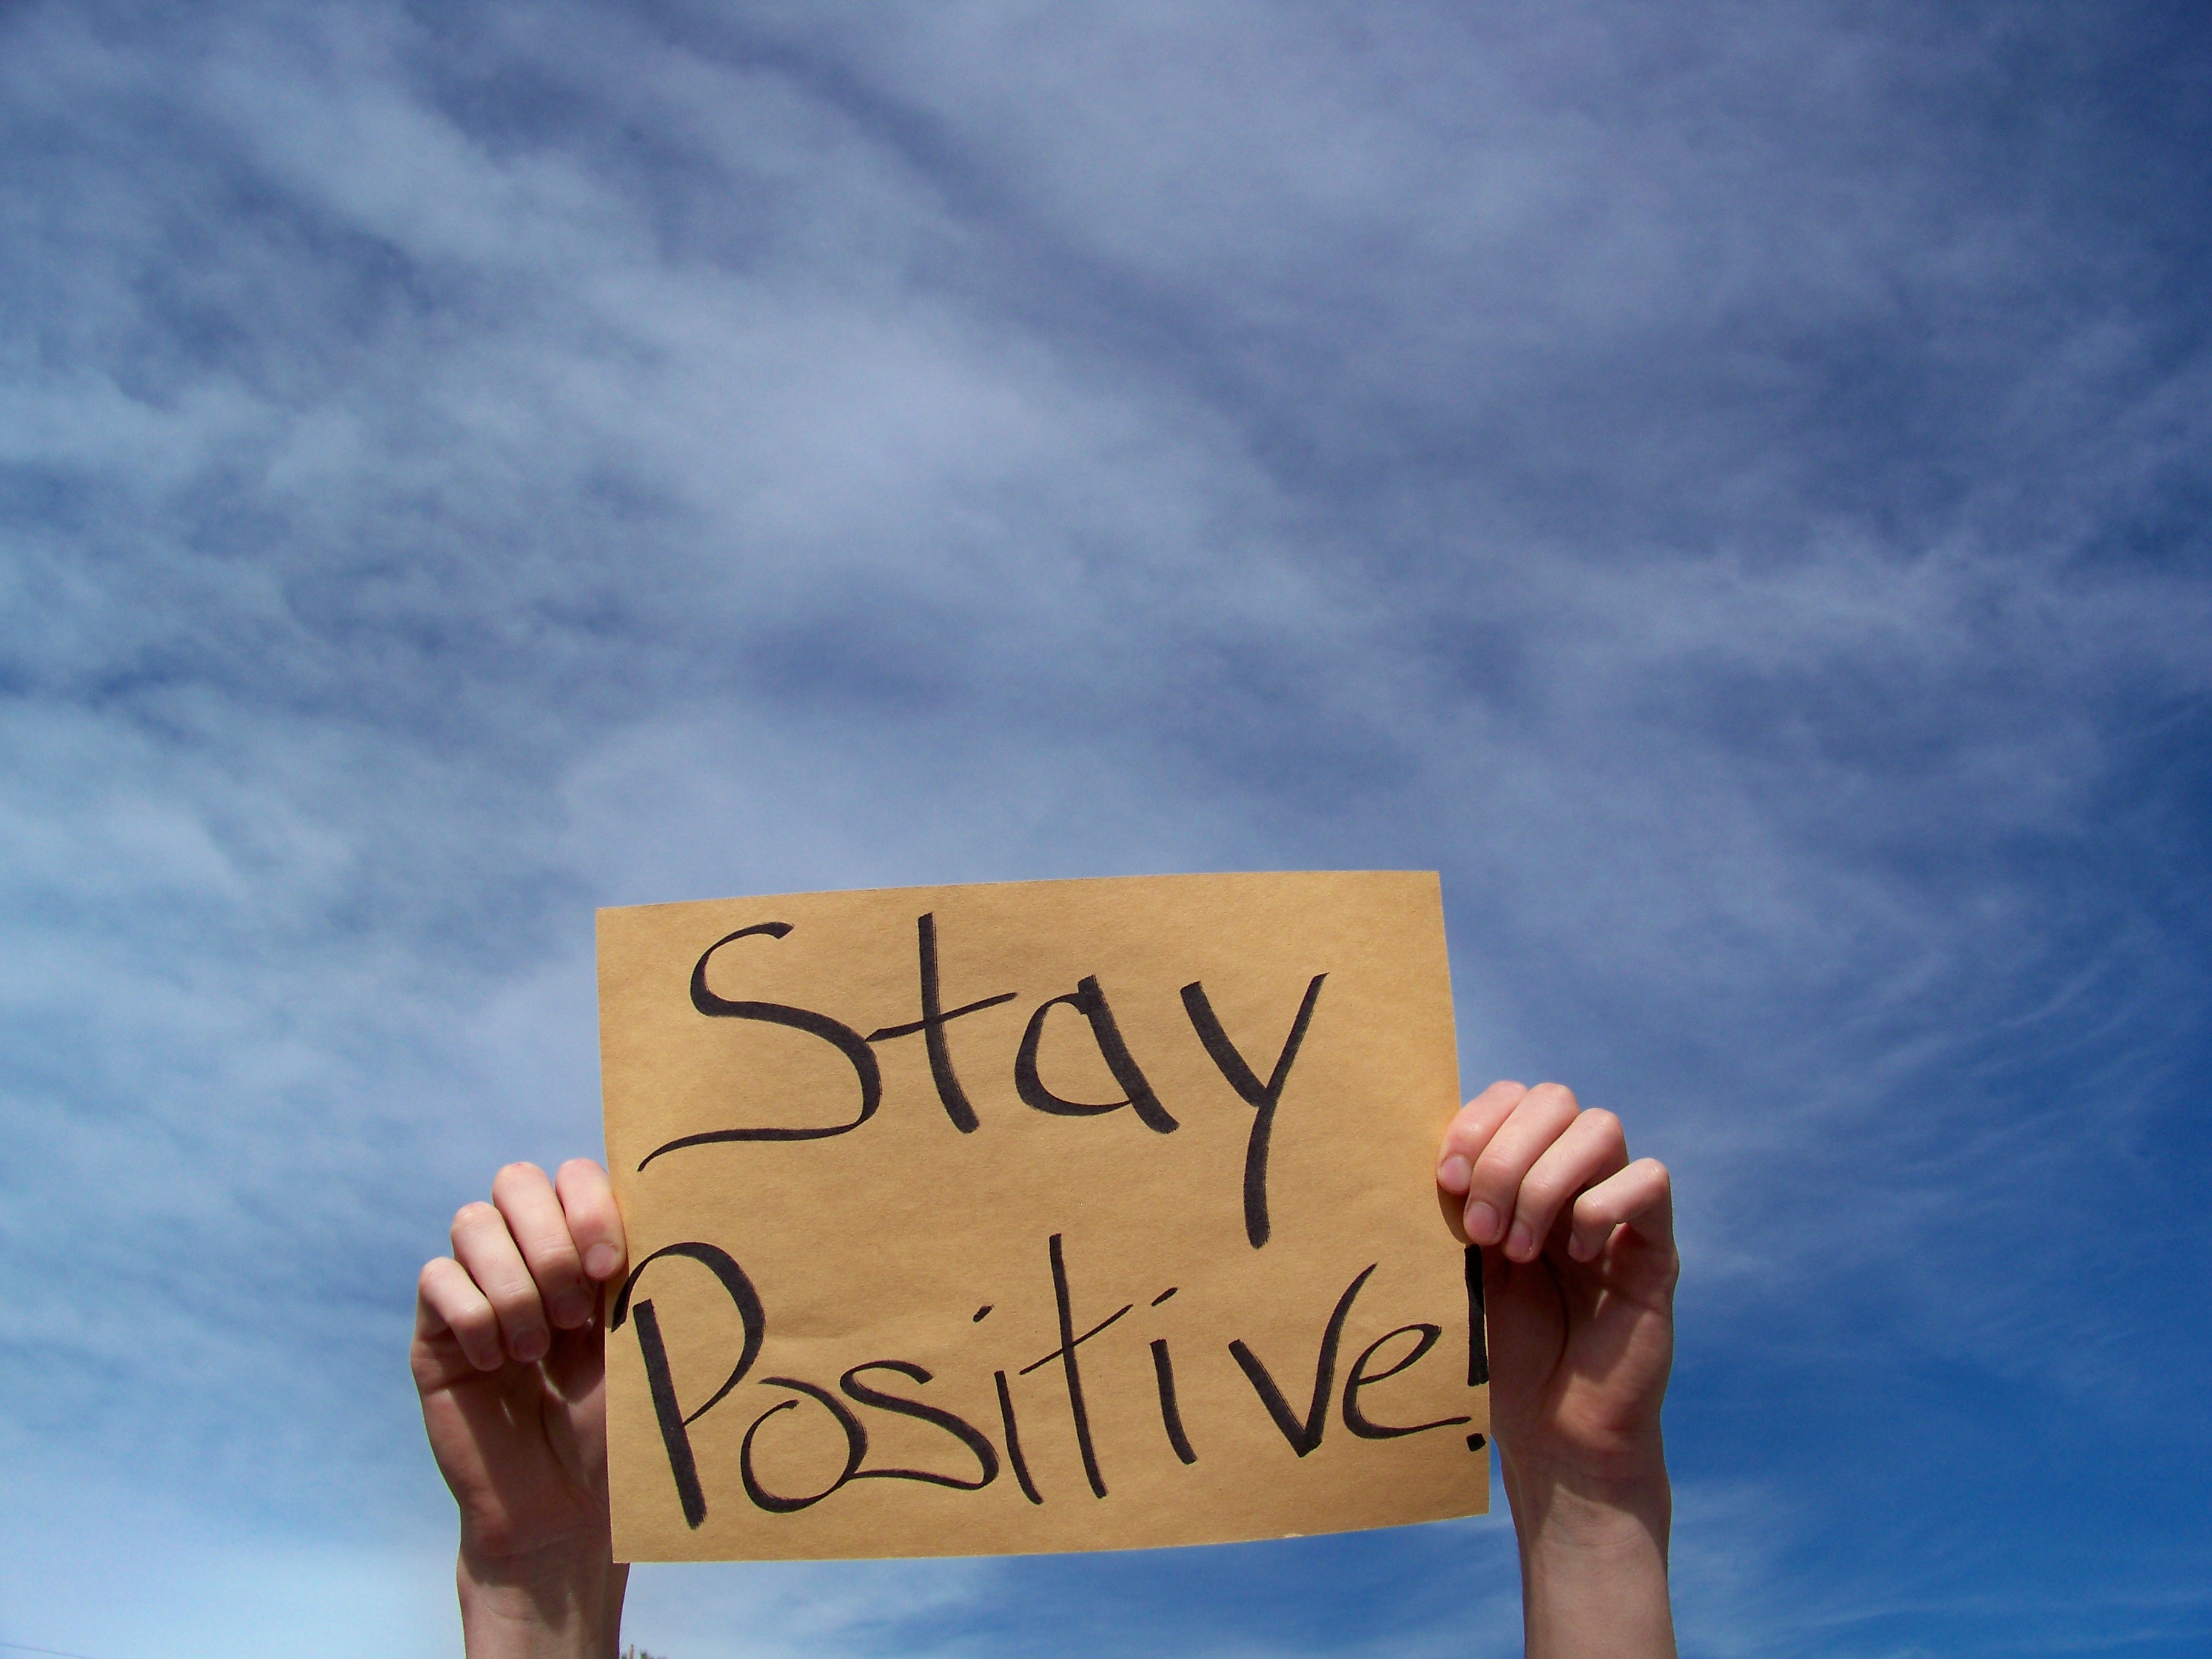 Keeping Positive Quote  5 Ways to Stay Positive Simplicity Parenting